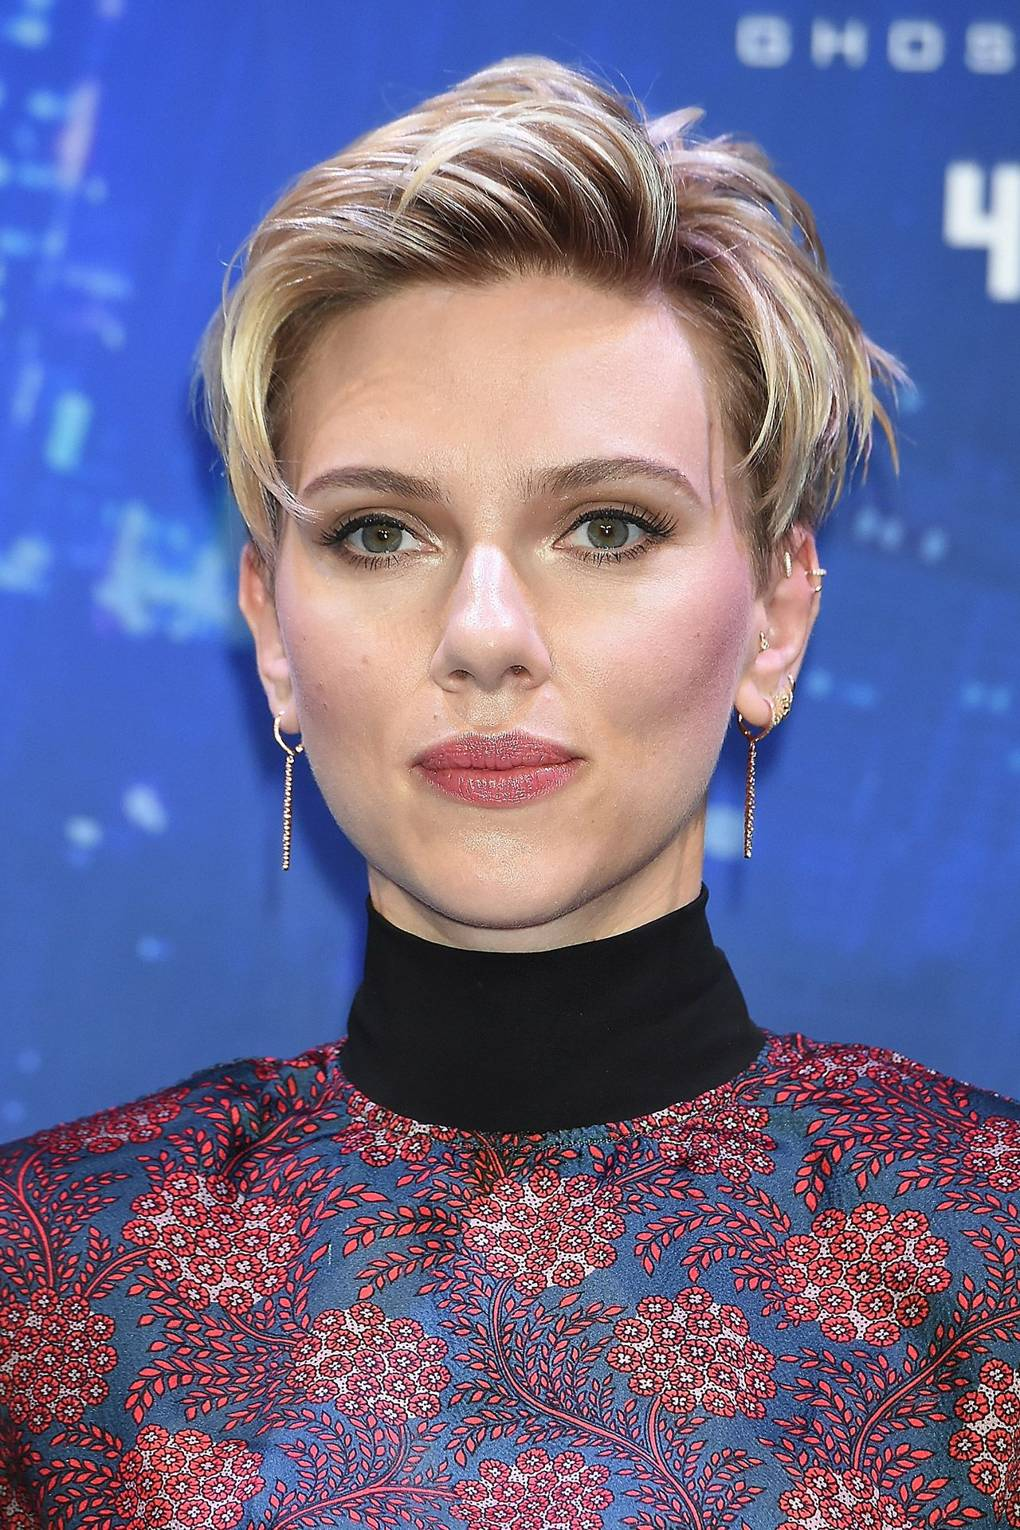 Hacked Scarlett Johansson nudes (87 photos), Topless, Leaked, Instagram, cleavage 2017